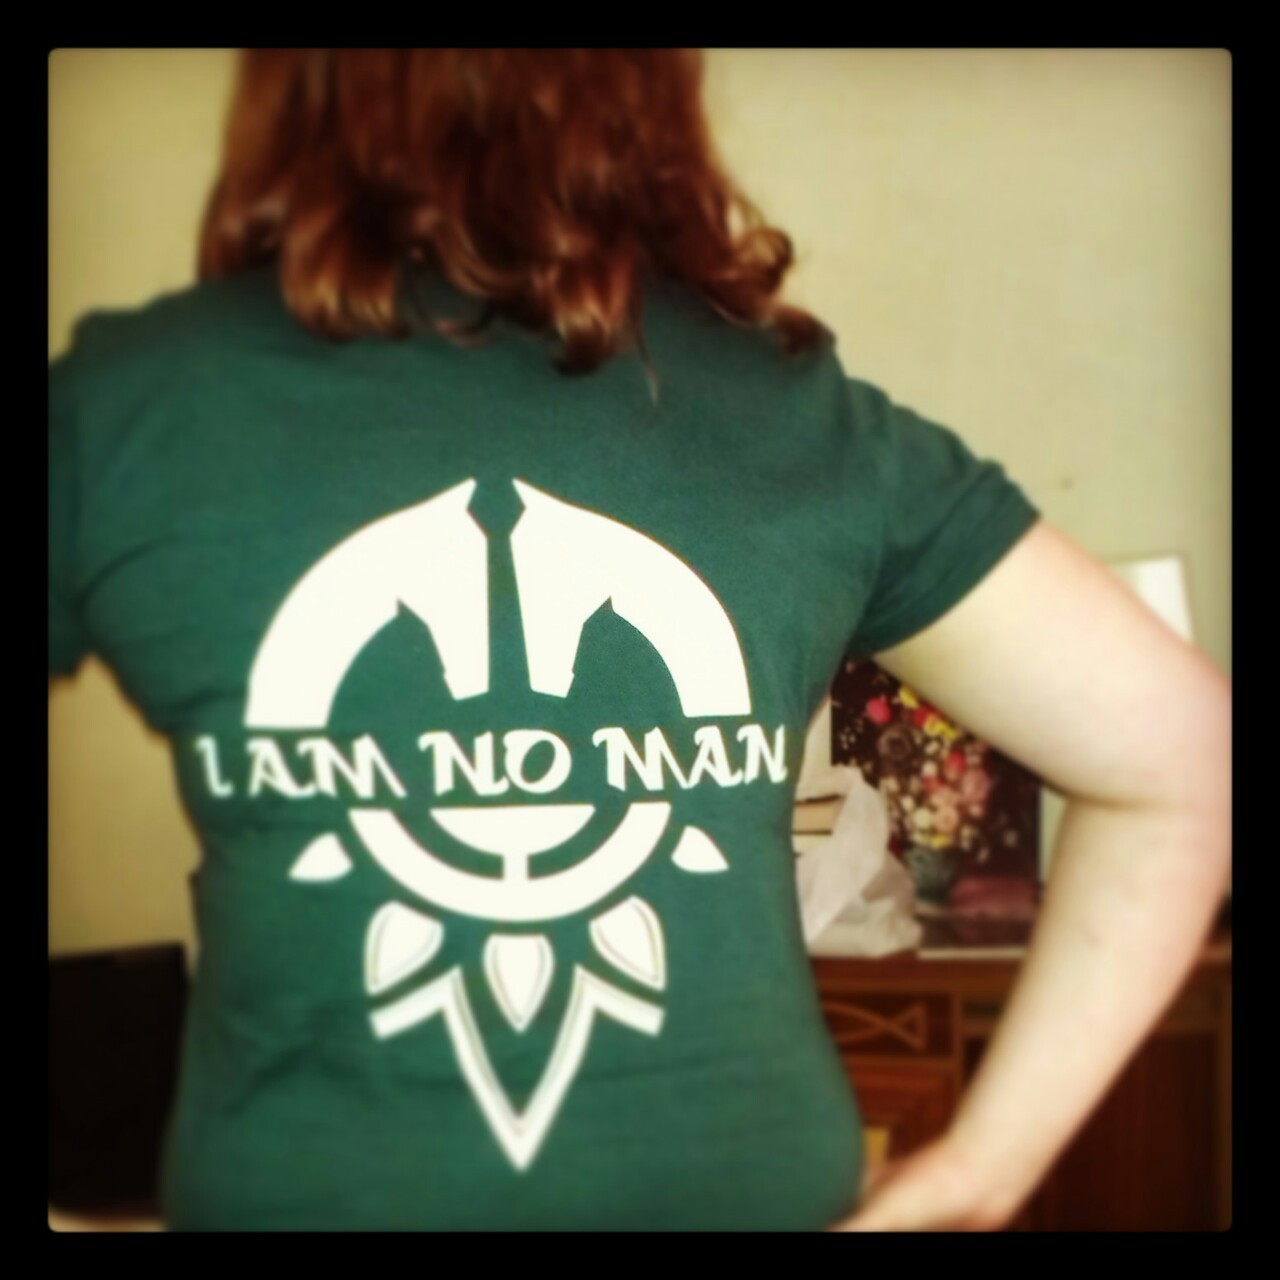 scenenothing:  My t-shirt arrived today! Awesome eowyn quote designed by tharook.  woo!